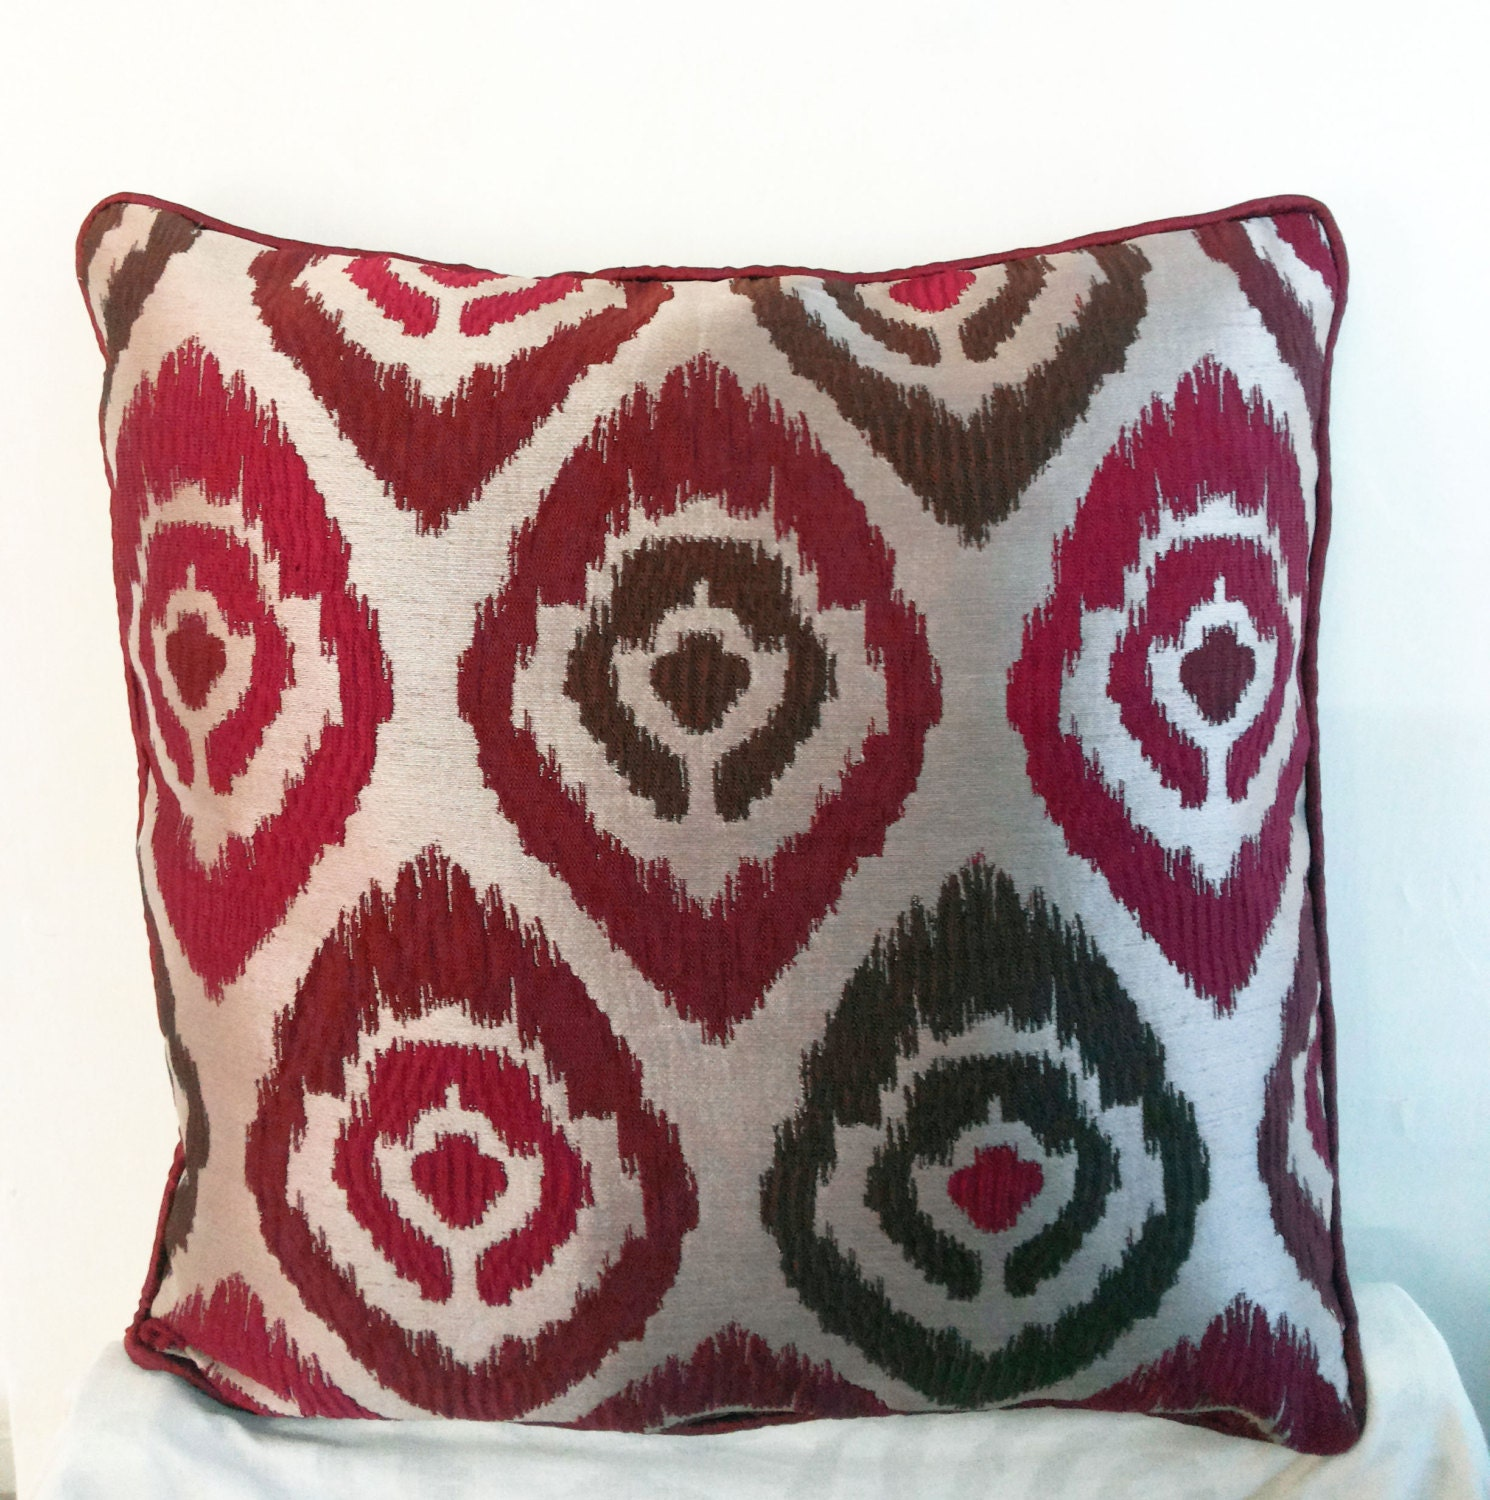 Decorative Pillows For Red Sofa : SALE 18x18 Red Beige Polyester Decorative Throw Pillow Cover